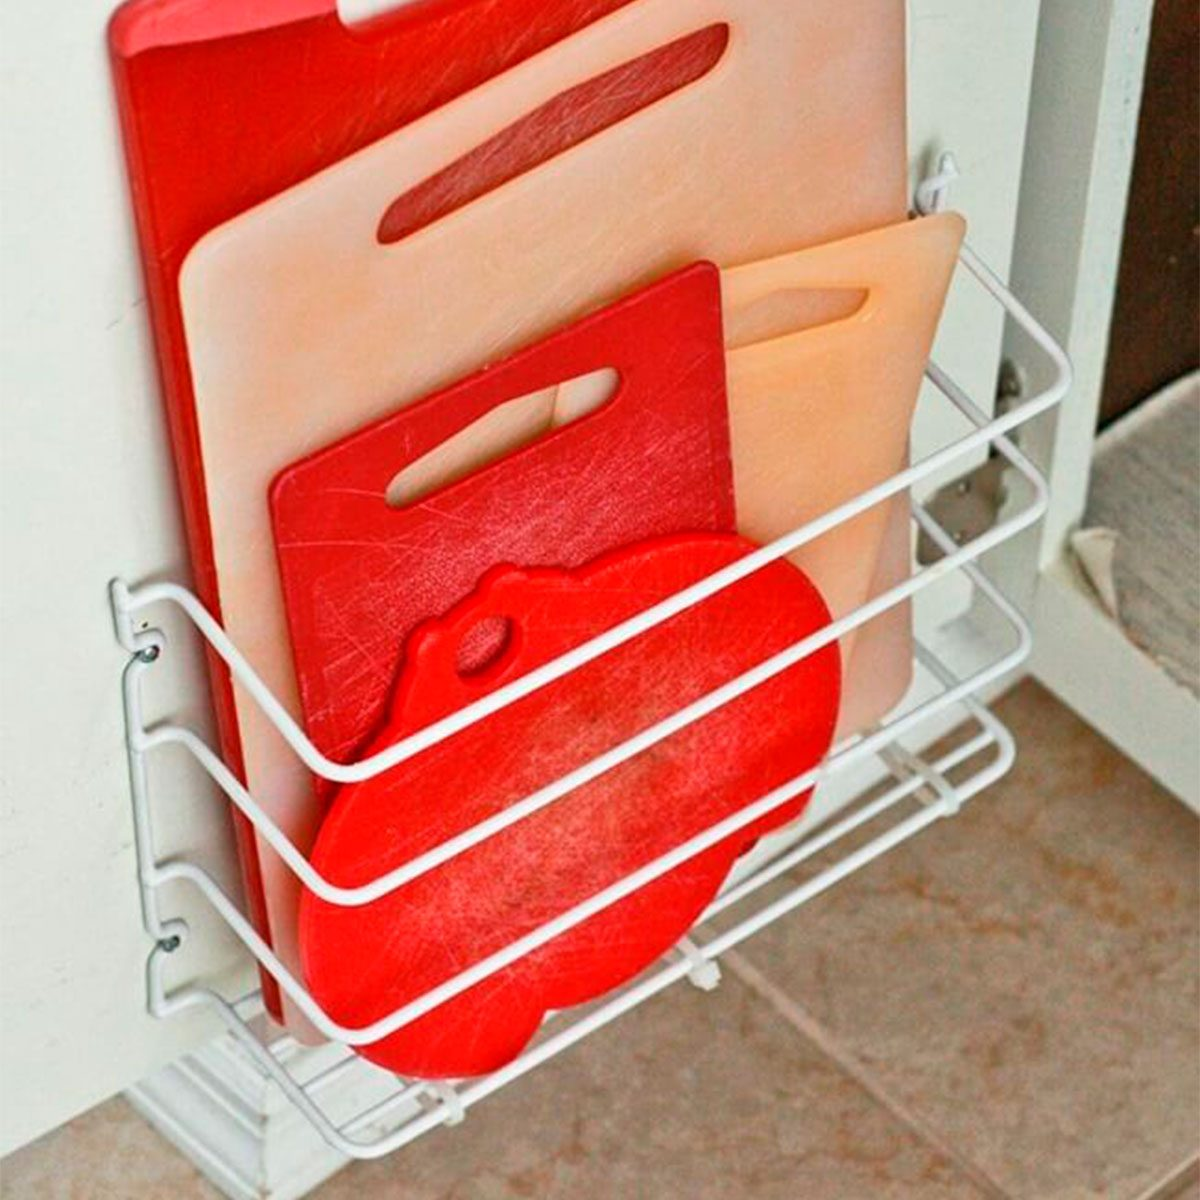 Organize those cutting boards